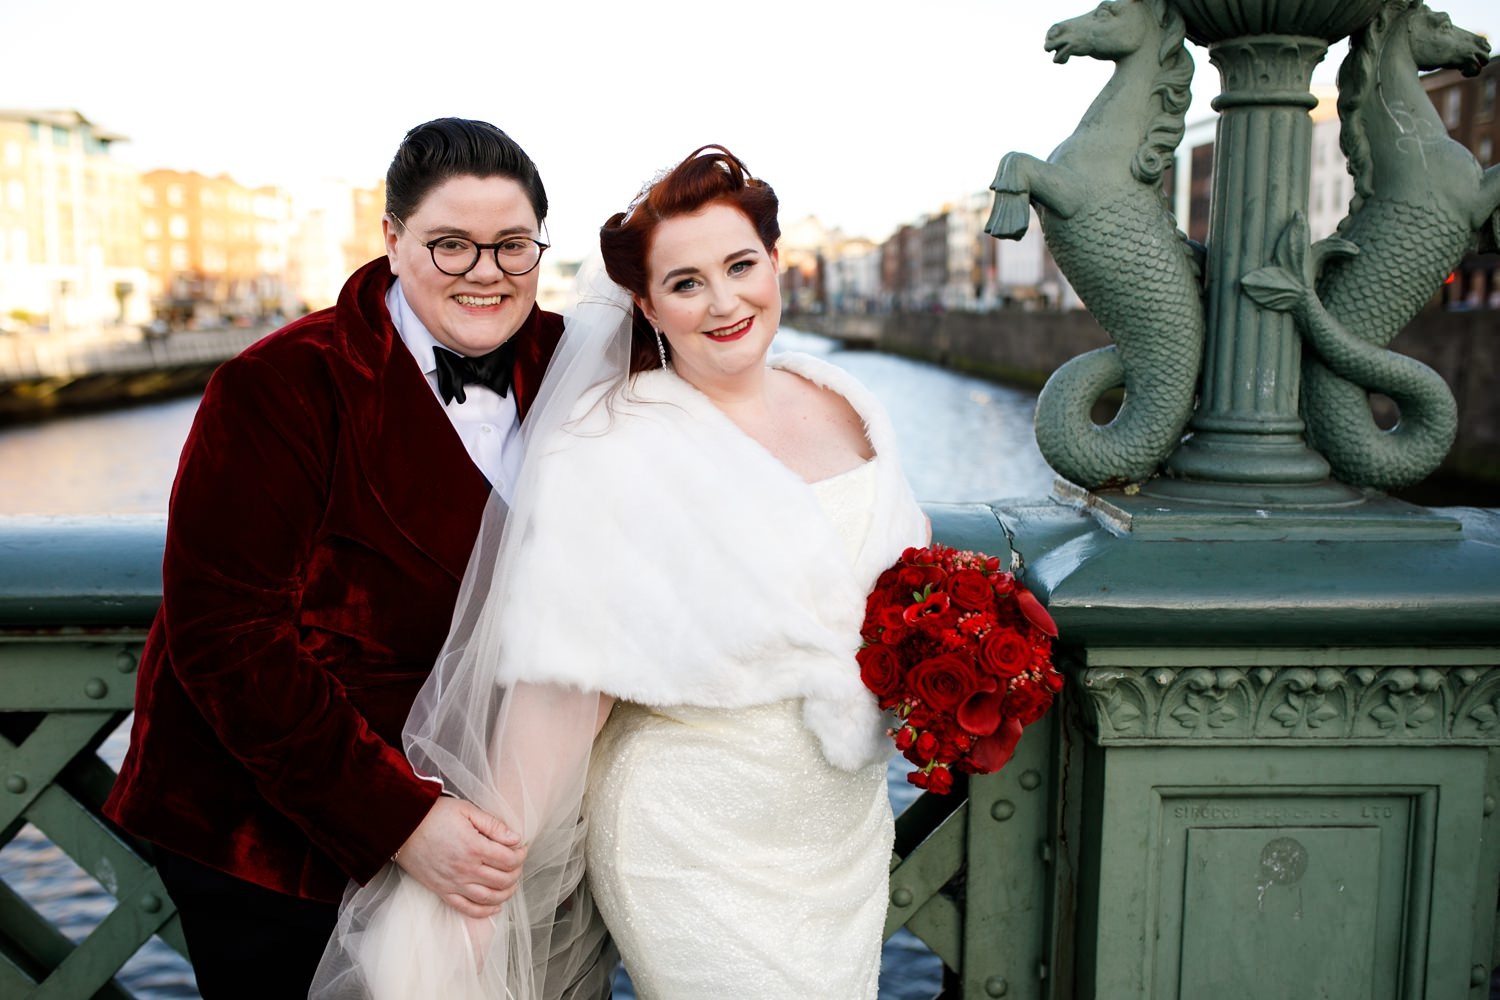 Elisha-Clarke-Photography-Dublin-City-Wedding_00260.jpg